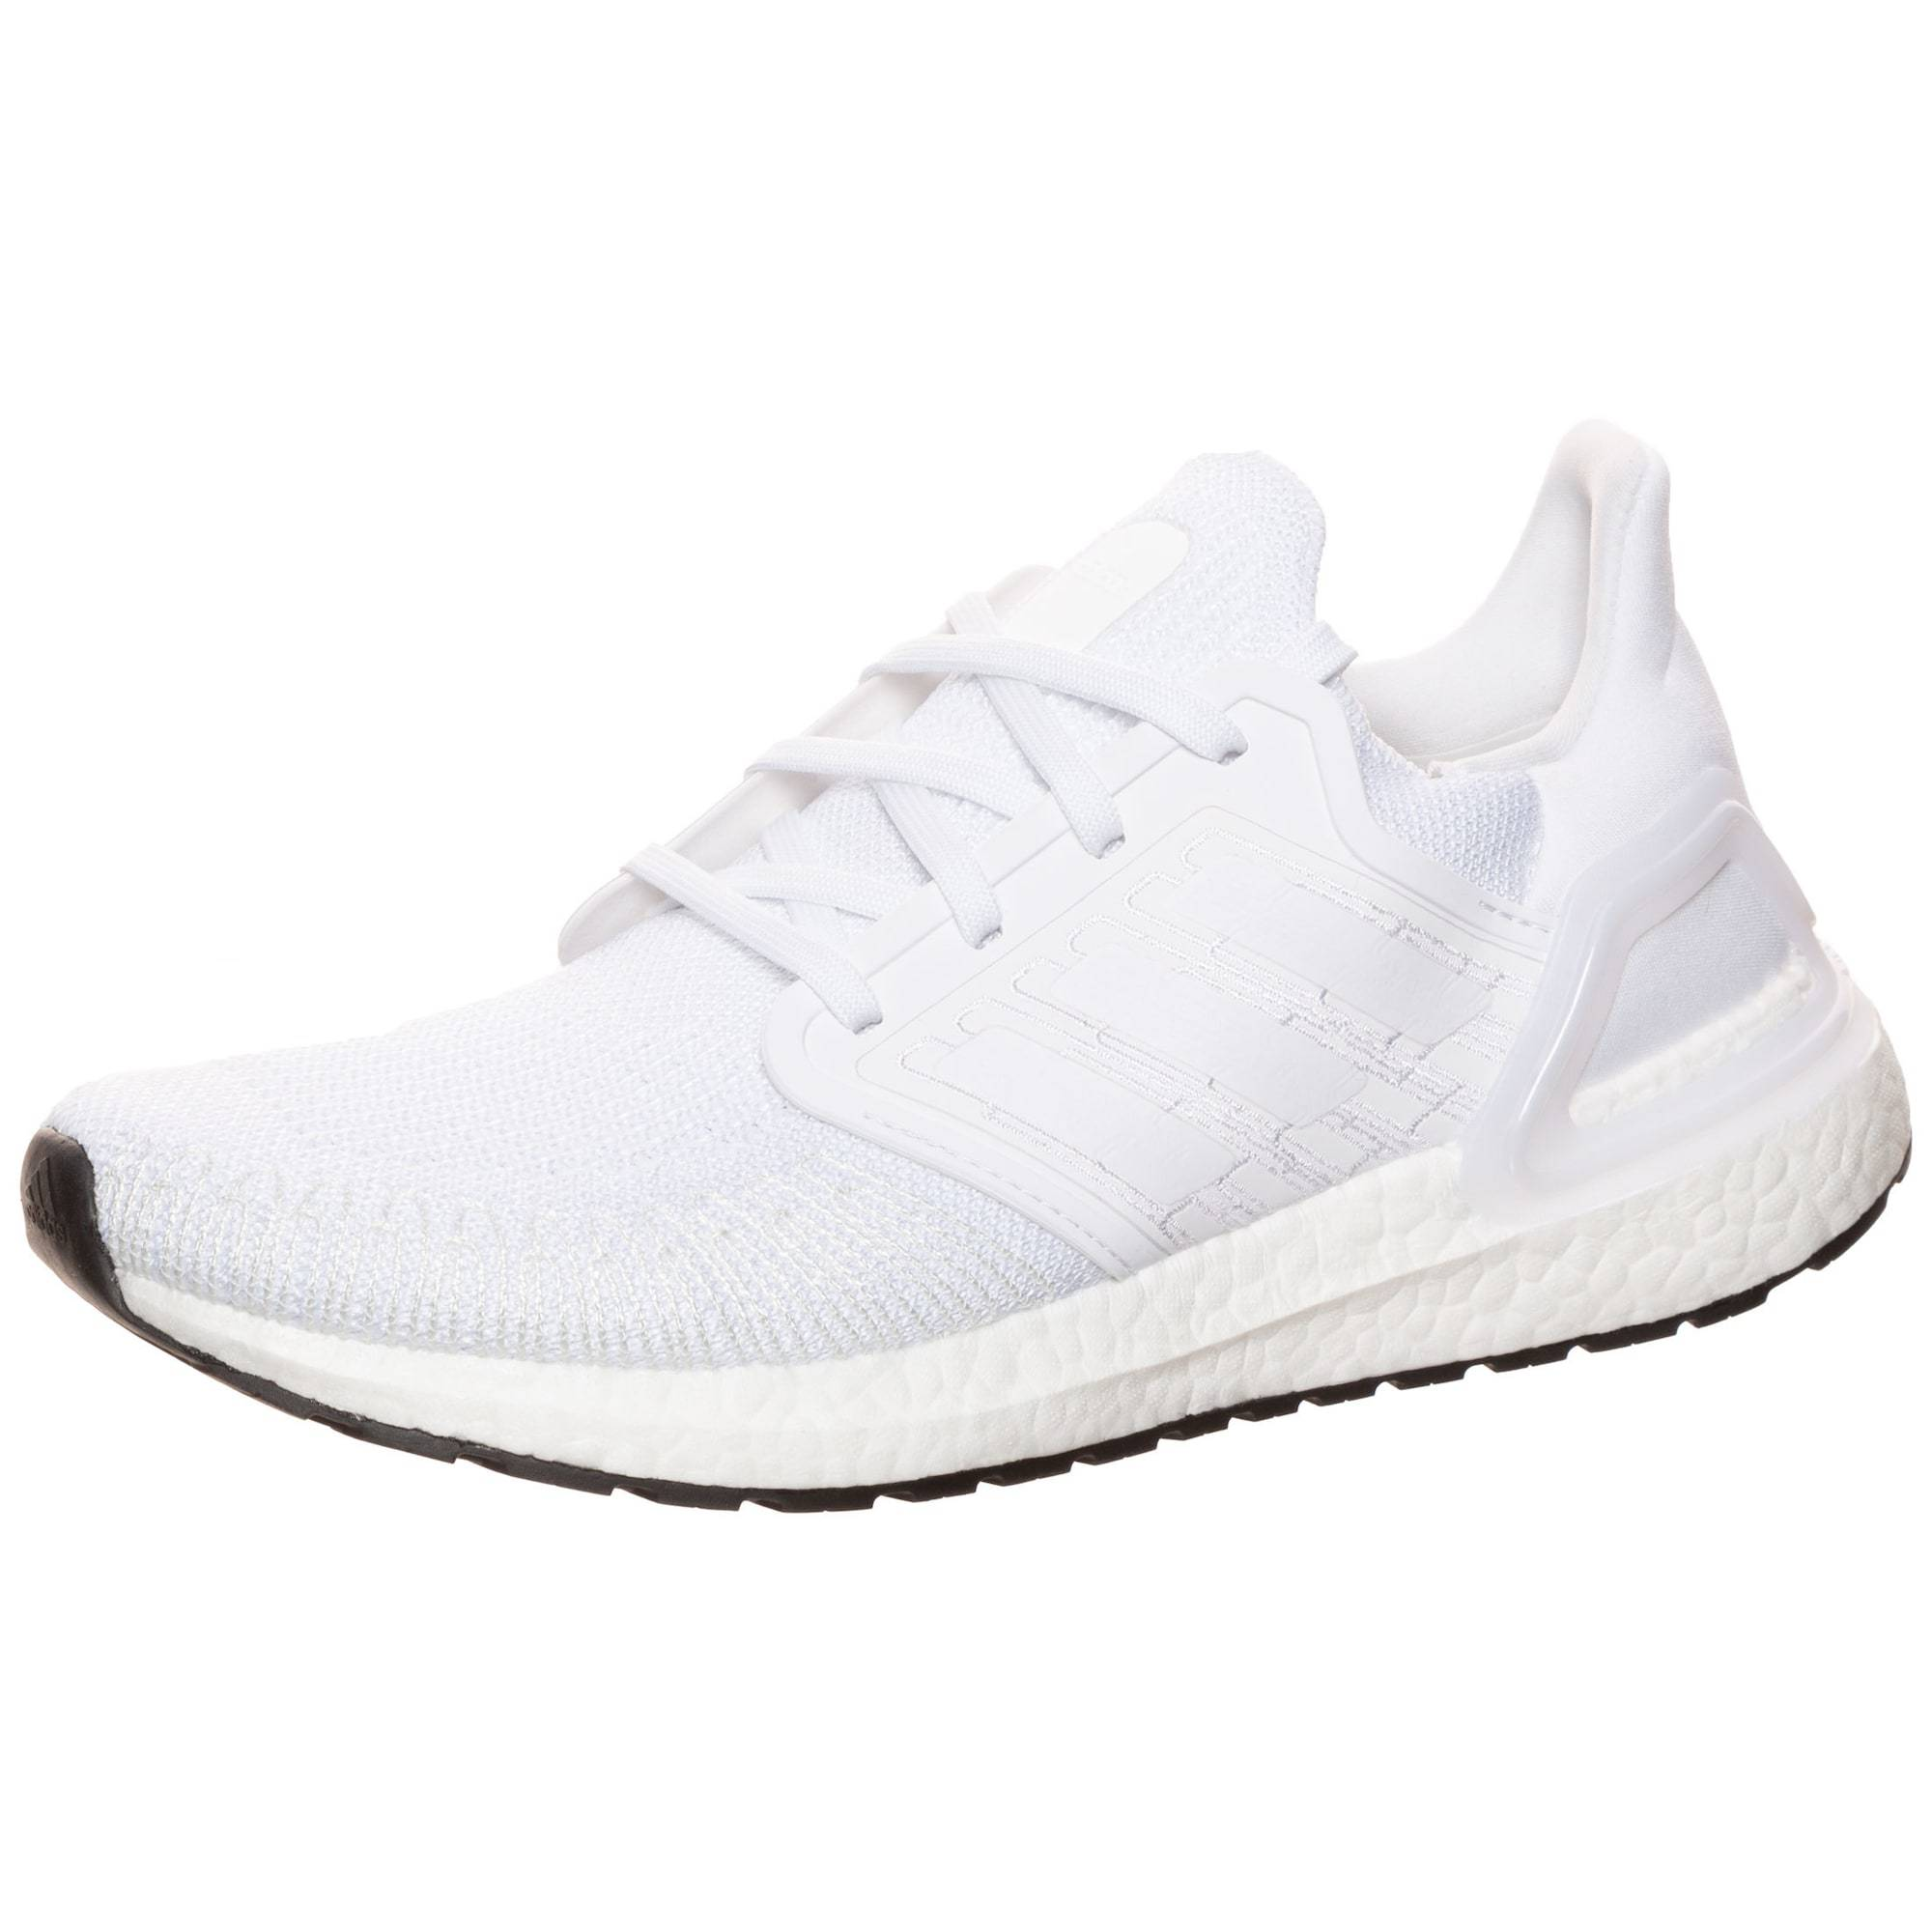 ADIDAS PERFORMANCE Chaussure de course 'ULTRABOOST 20 W'  - Blanc - Taille: 5 - female